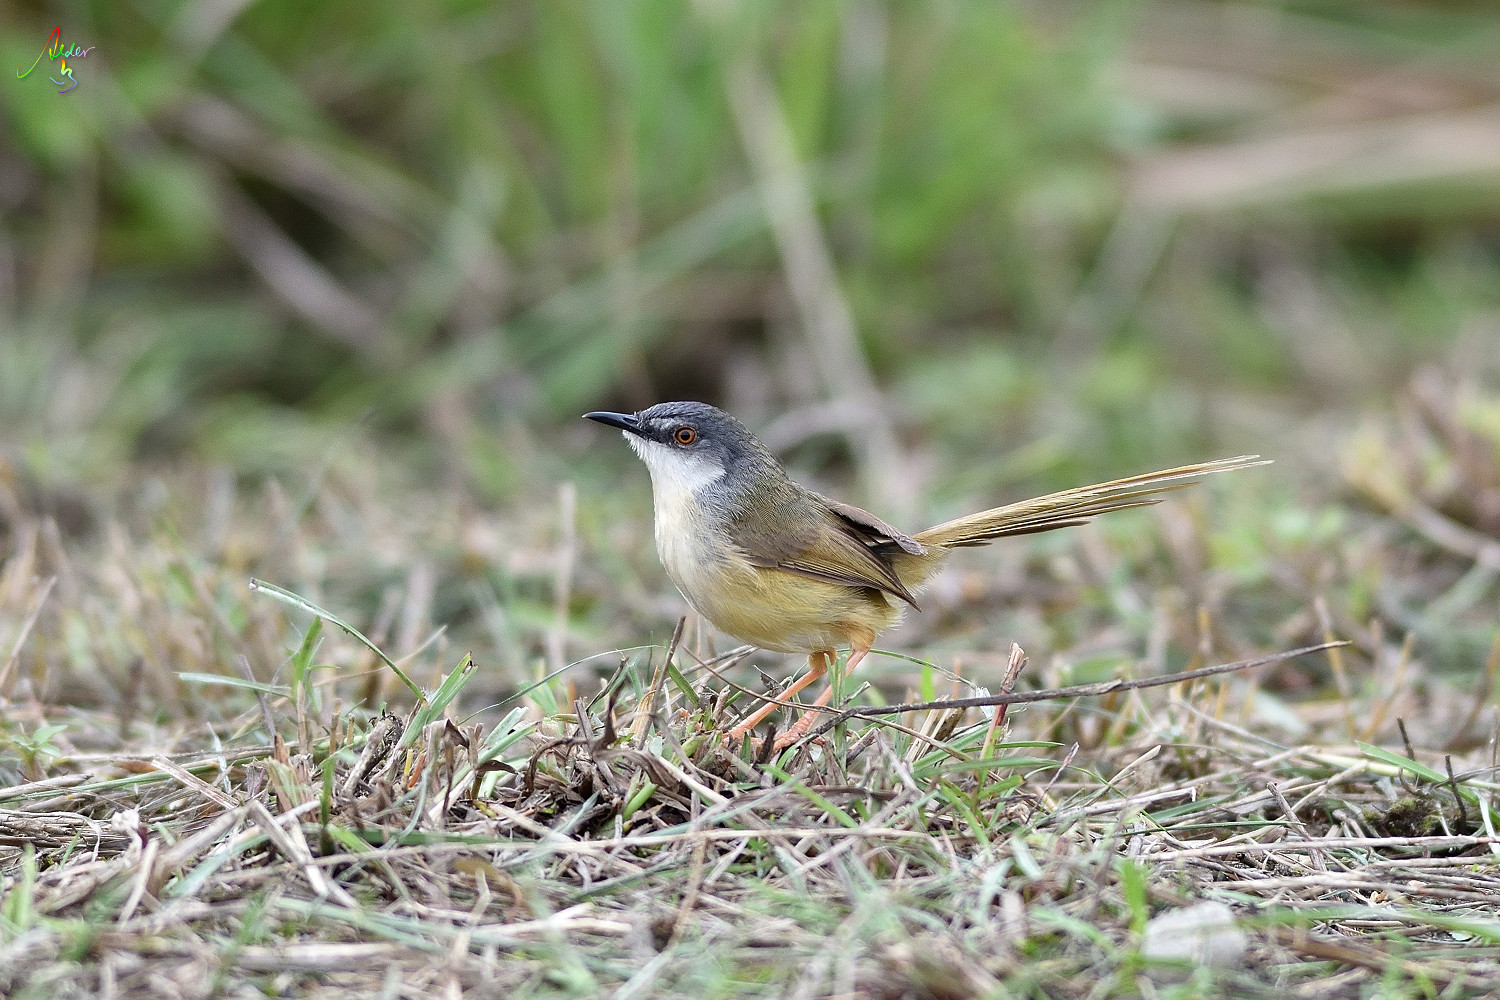 Yellow-bellied_Prinia_3662